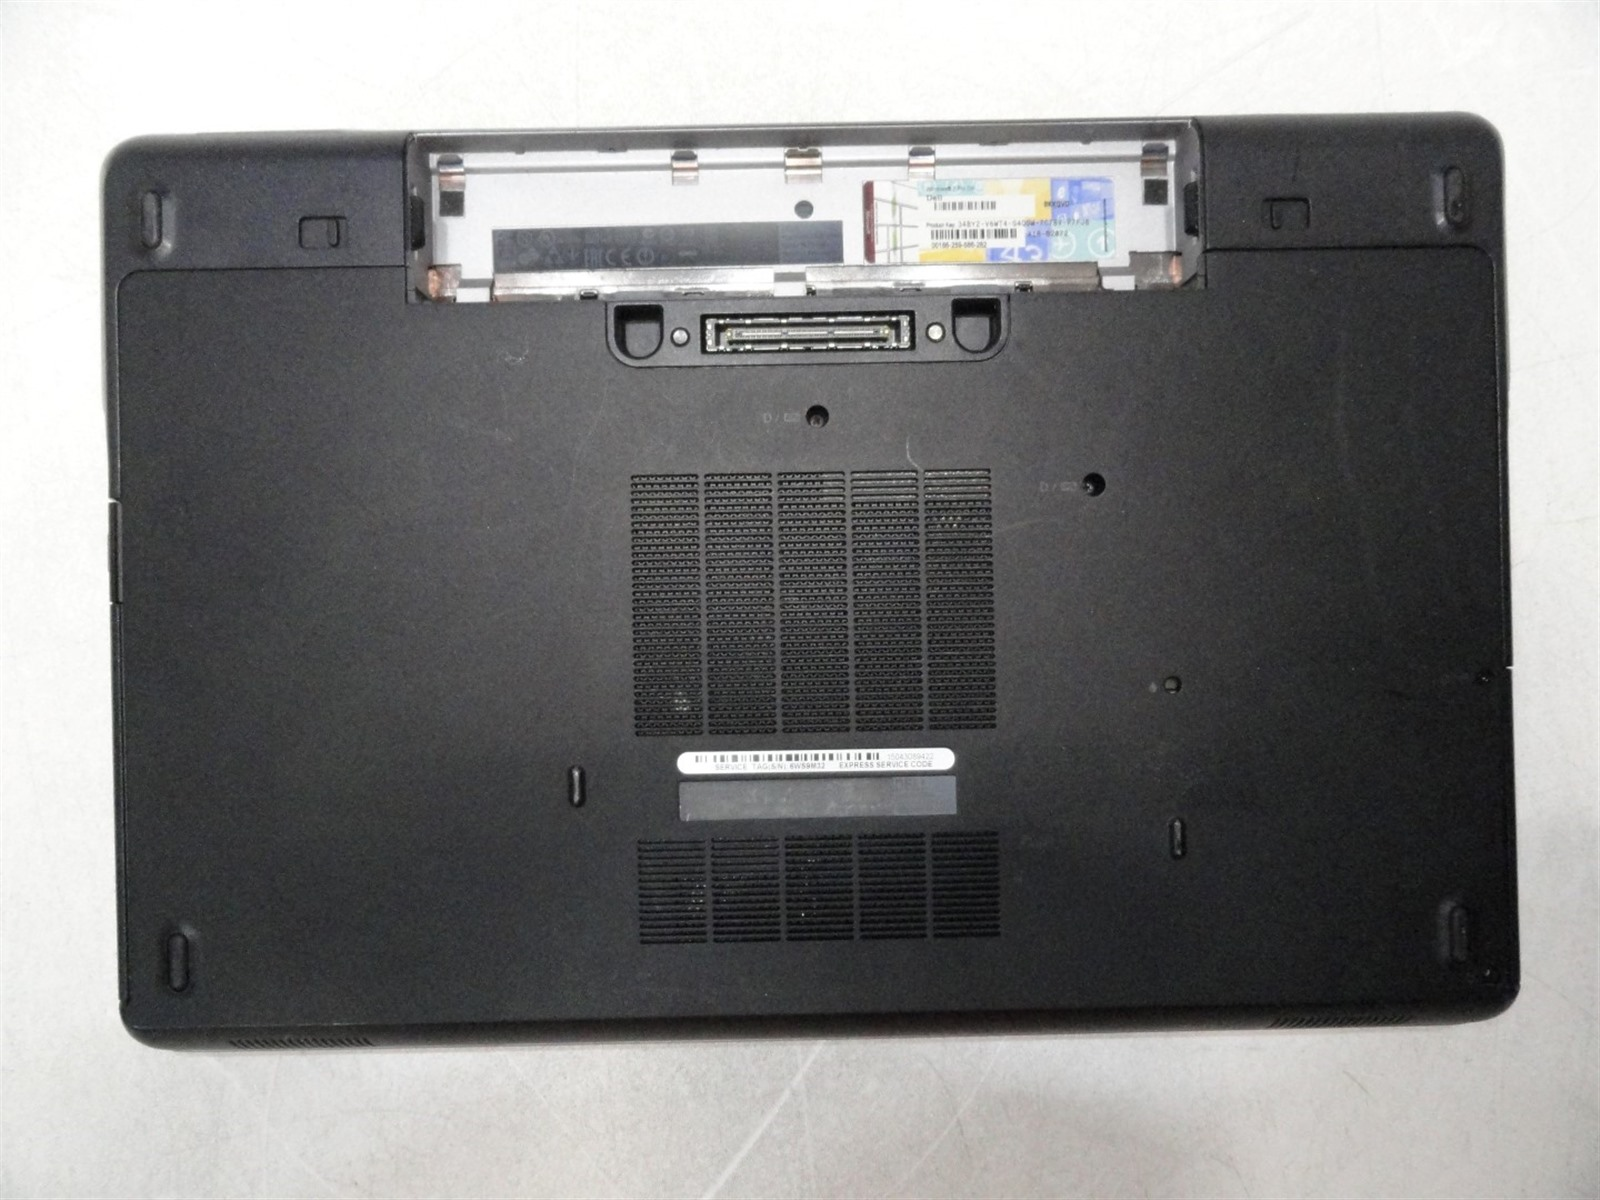 Details about Dell Latitude E6540 Laptop NO CPU 0RAM Does NOT Power On AS-IS